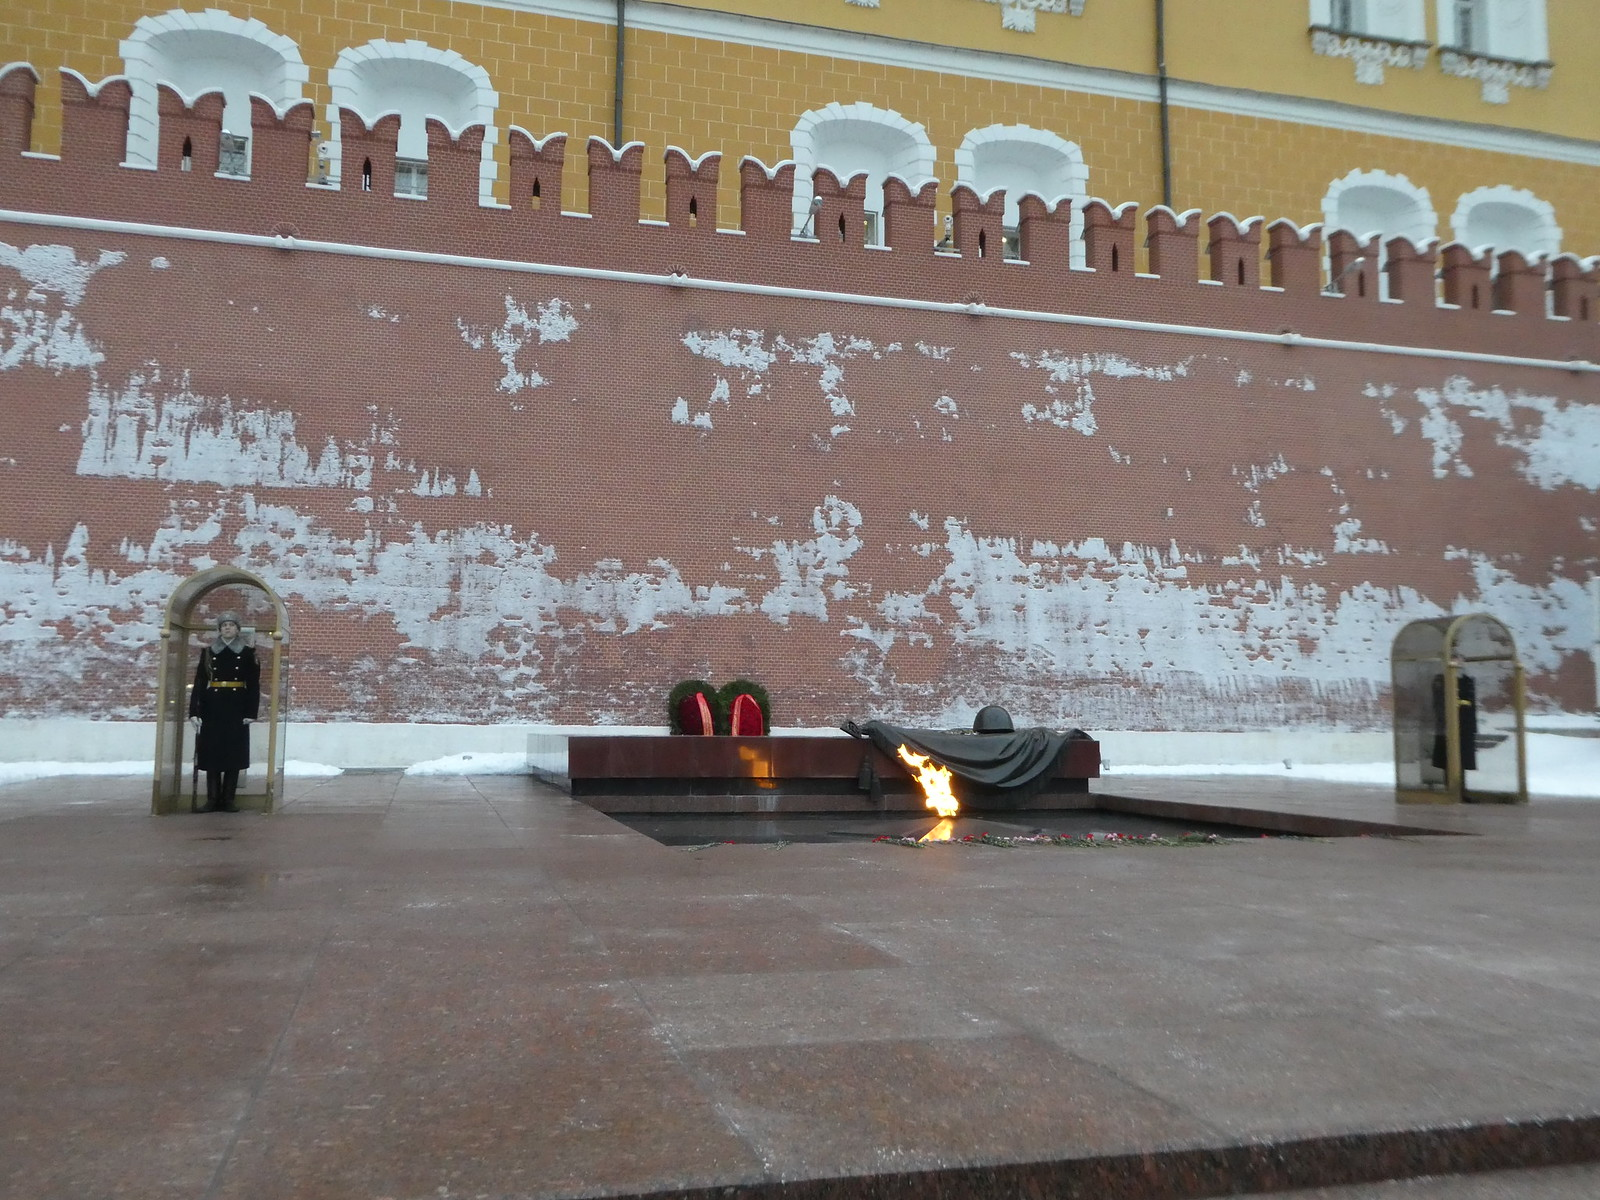 The tomb of the unknown soldier, Moscow